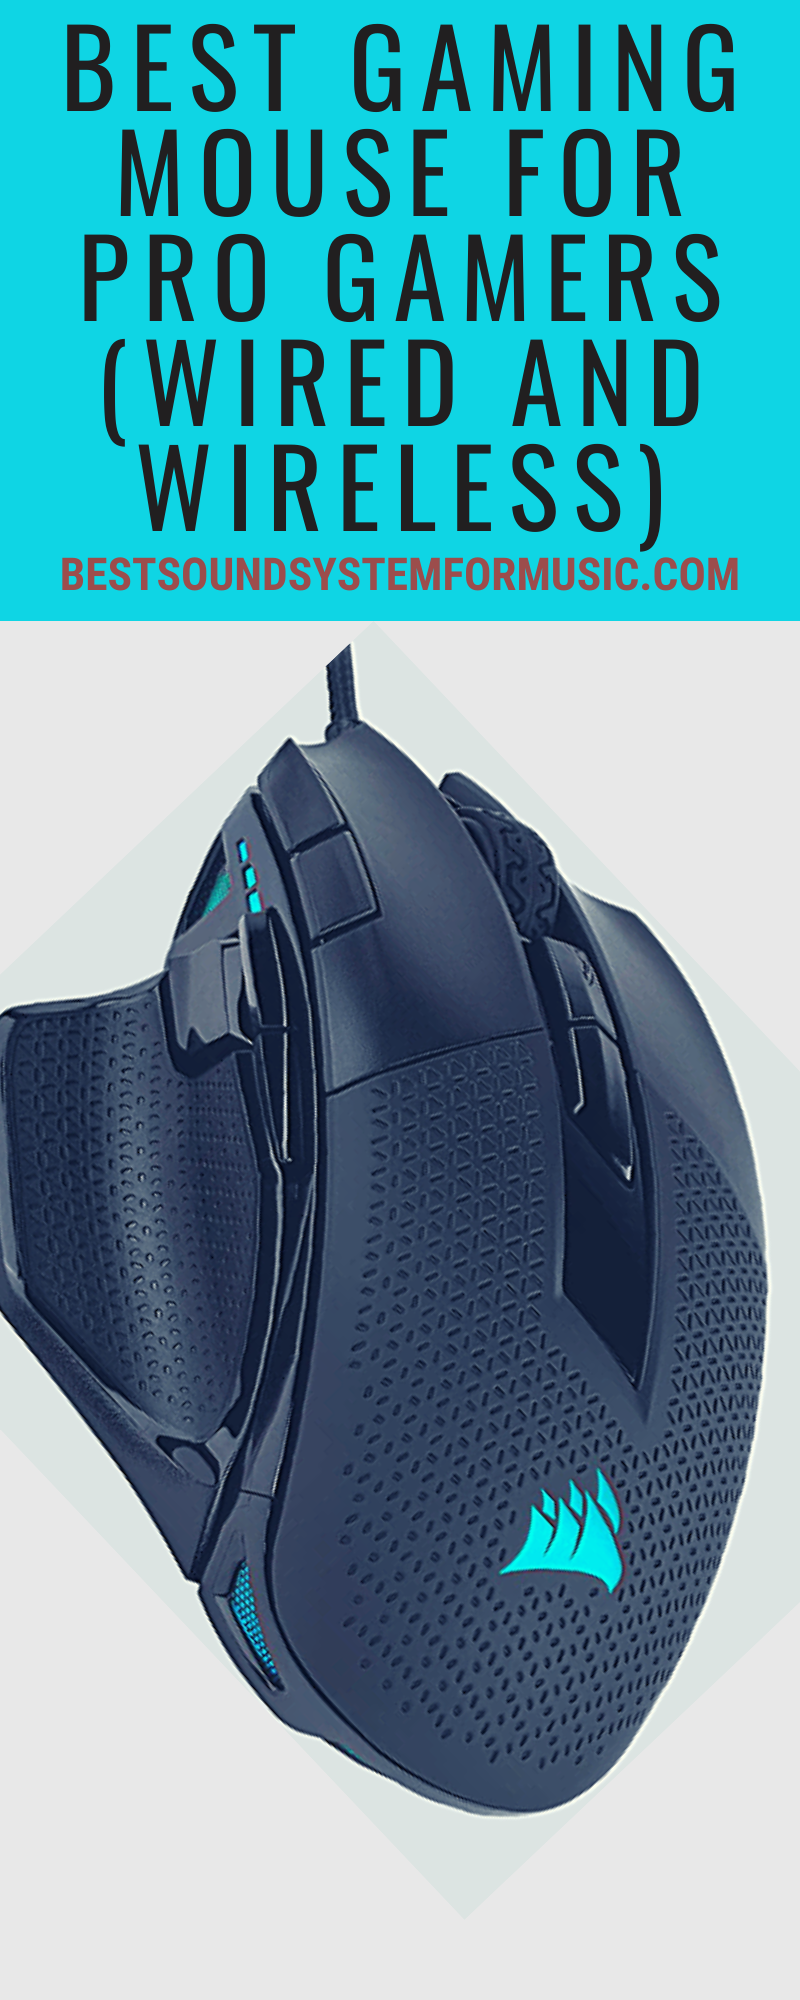 Best Gaming Mouse For Pro Gamers (Wired And Wireless)